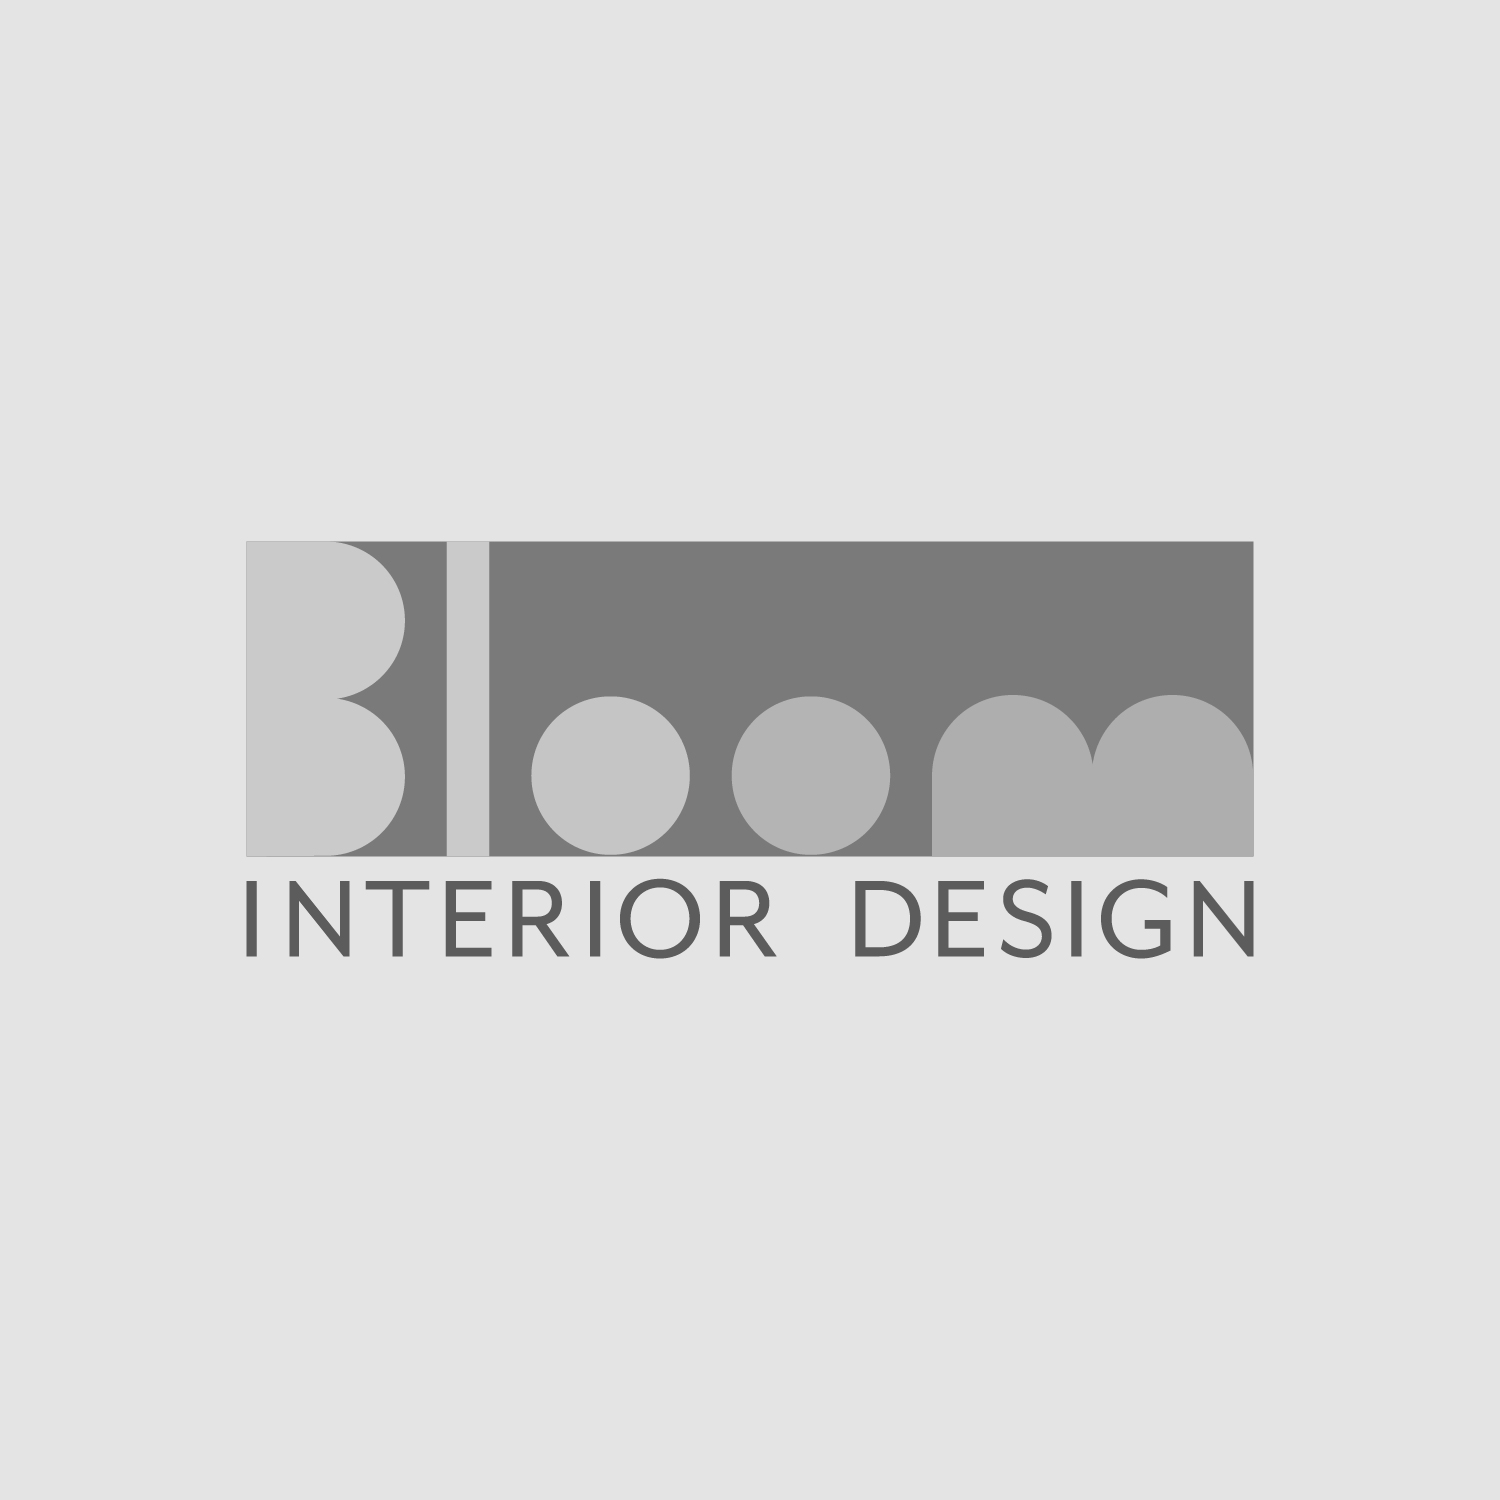 Simeon-Goa_Victoria-Canada_Graphic-Design_Illustration_Logos_Bloom-Interior-Design.jpg